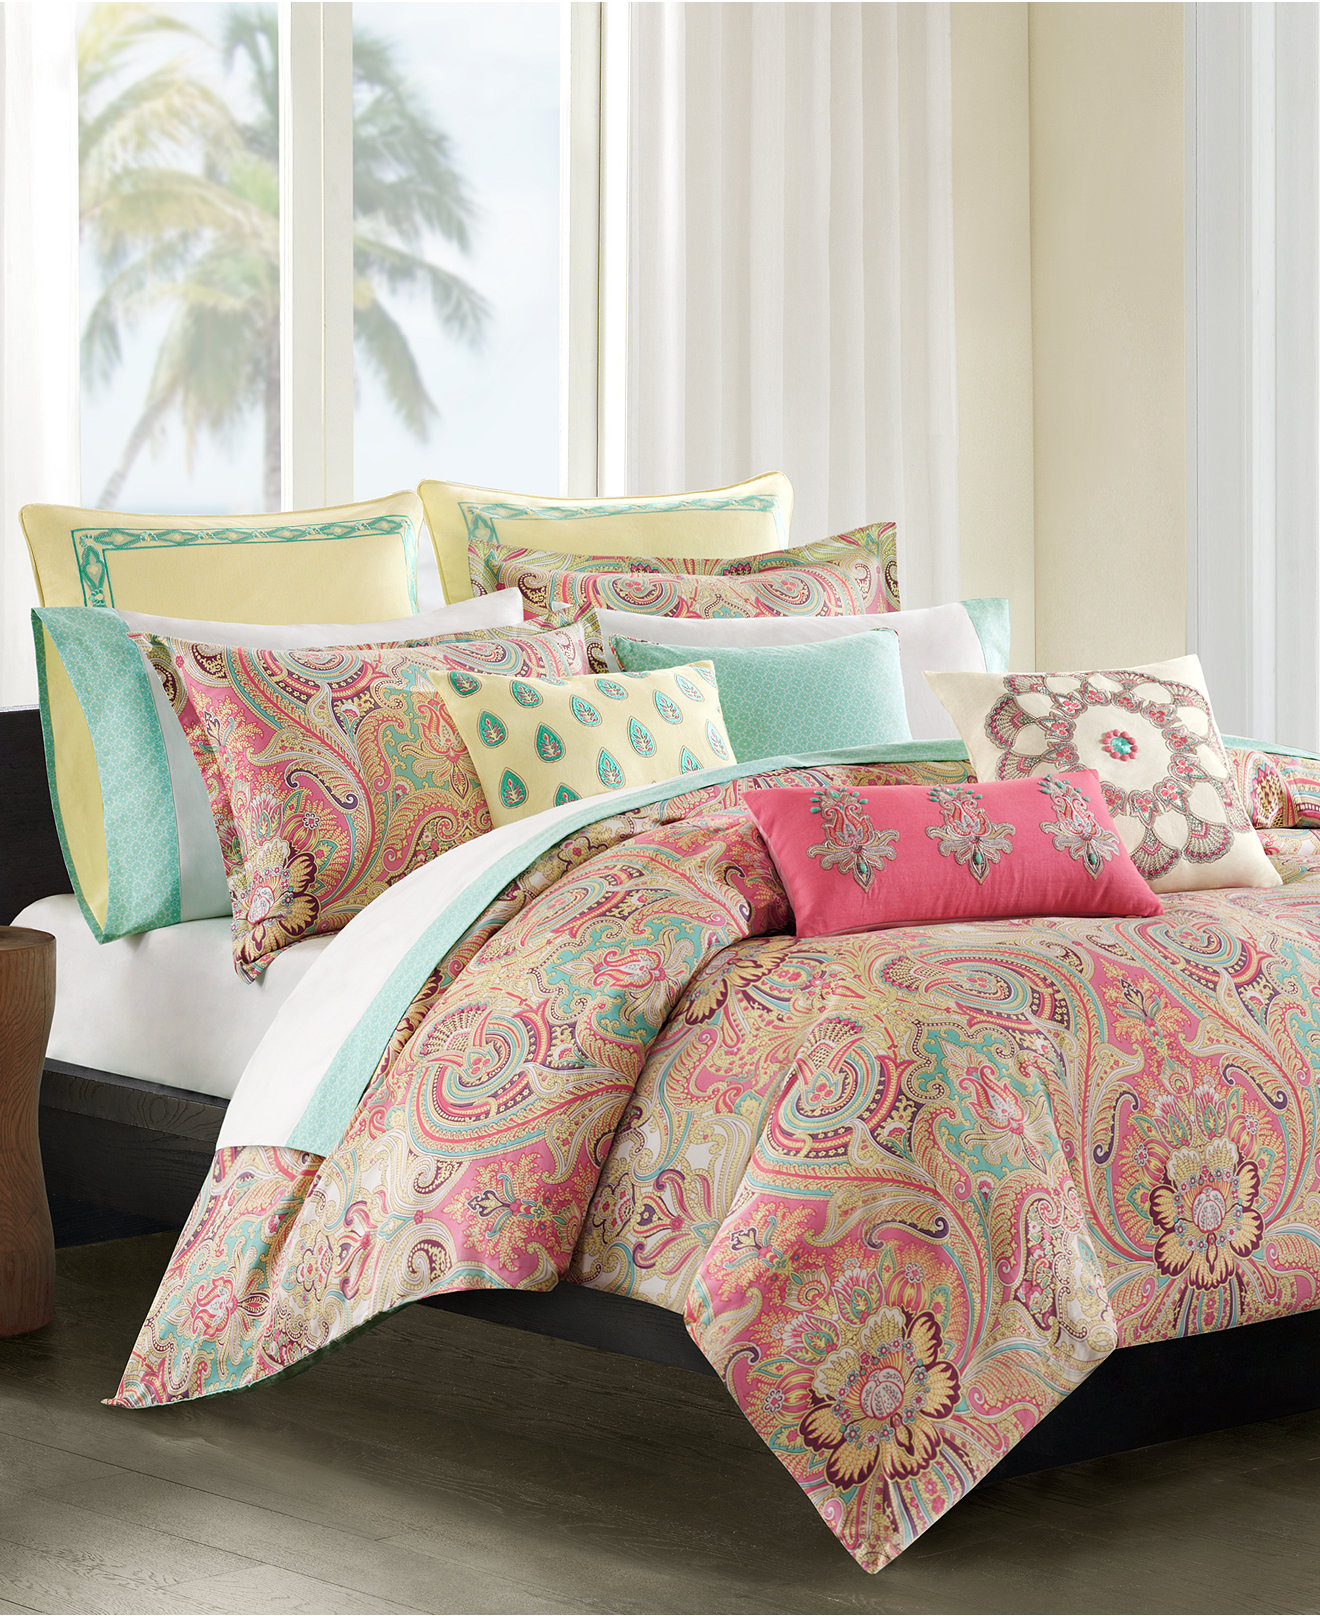 Echo Guinevere 3 pc Bedding Collection  100  Cotton   Bedding Collections    Bed   Bath   Macy s. Echo Guinevere 3 pc Bedding Collection  100  Cotton   Bedding